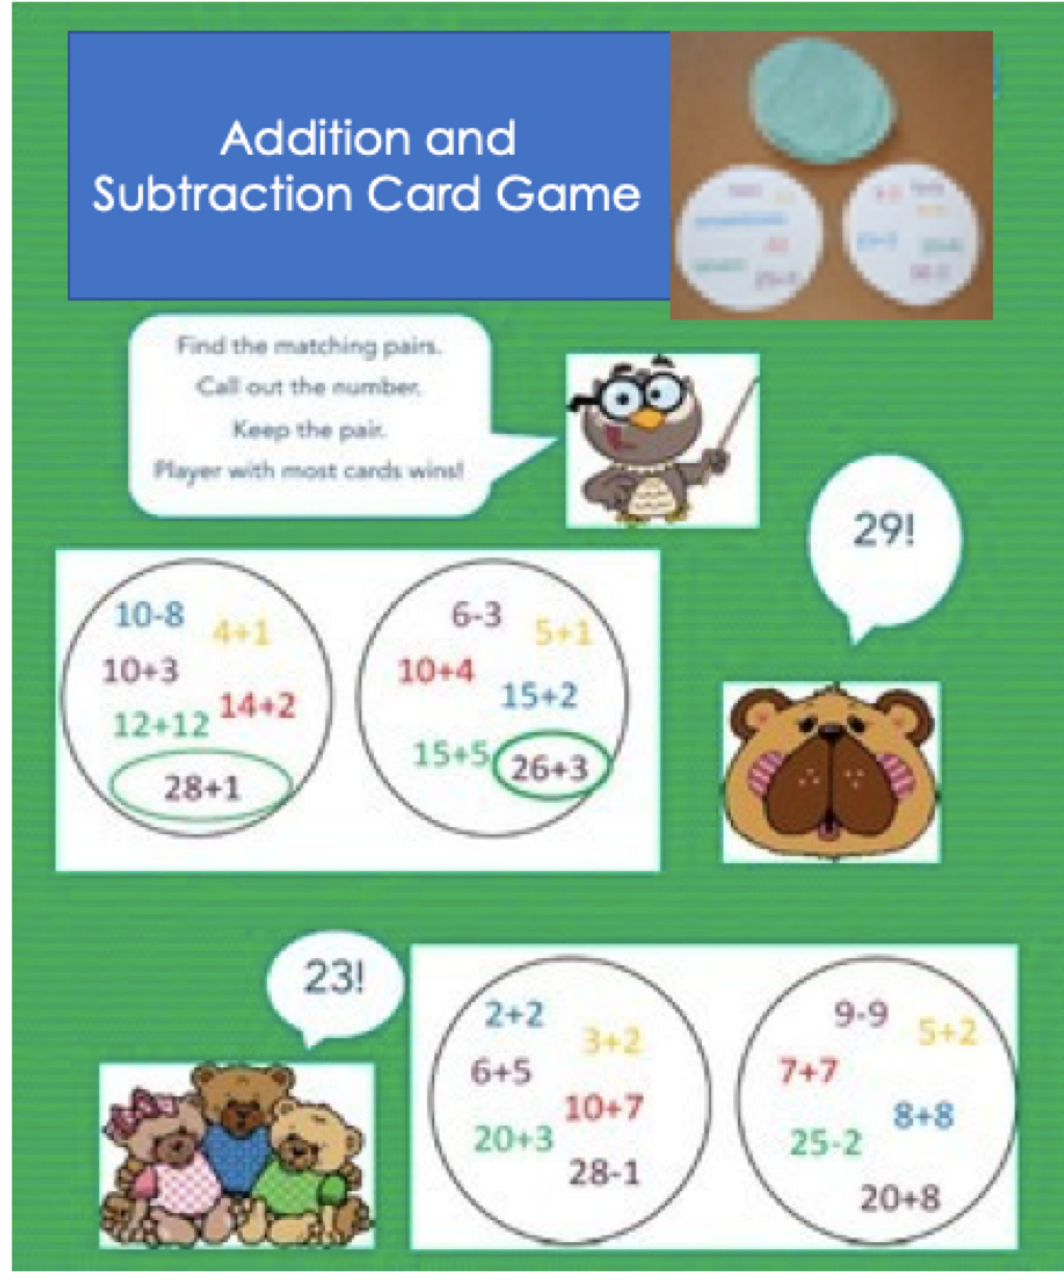 Addition and Subtraction Card Game